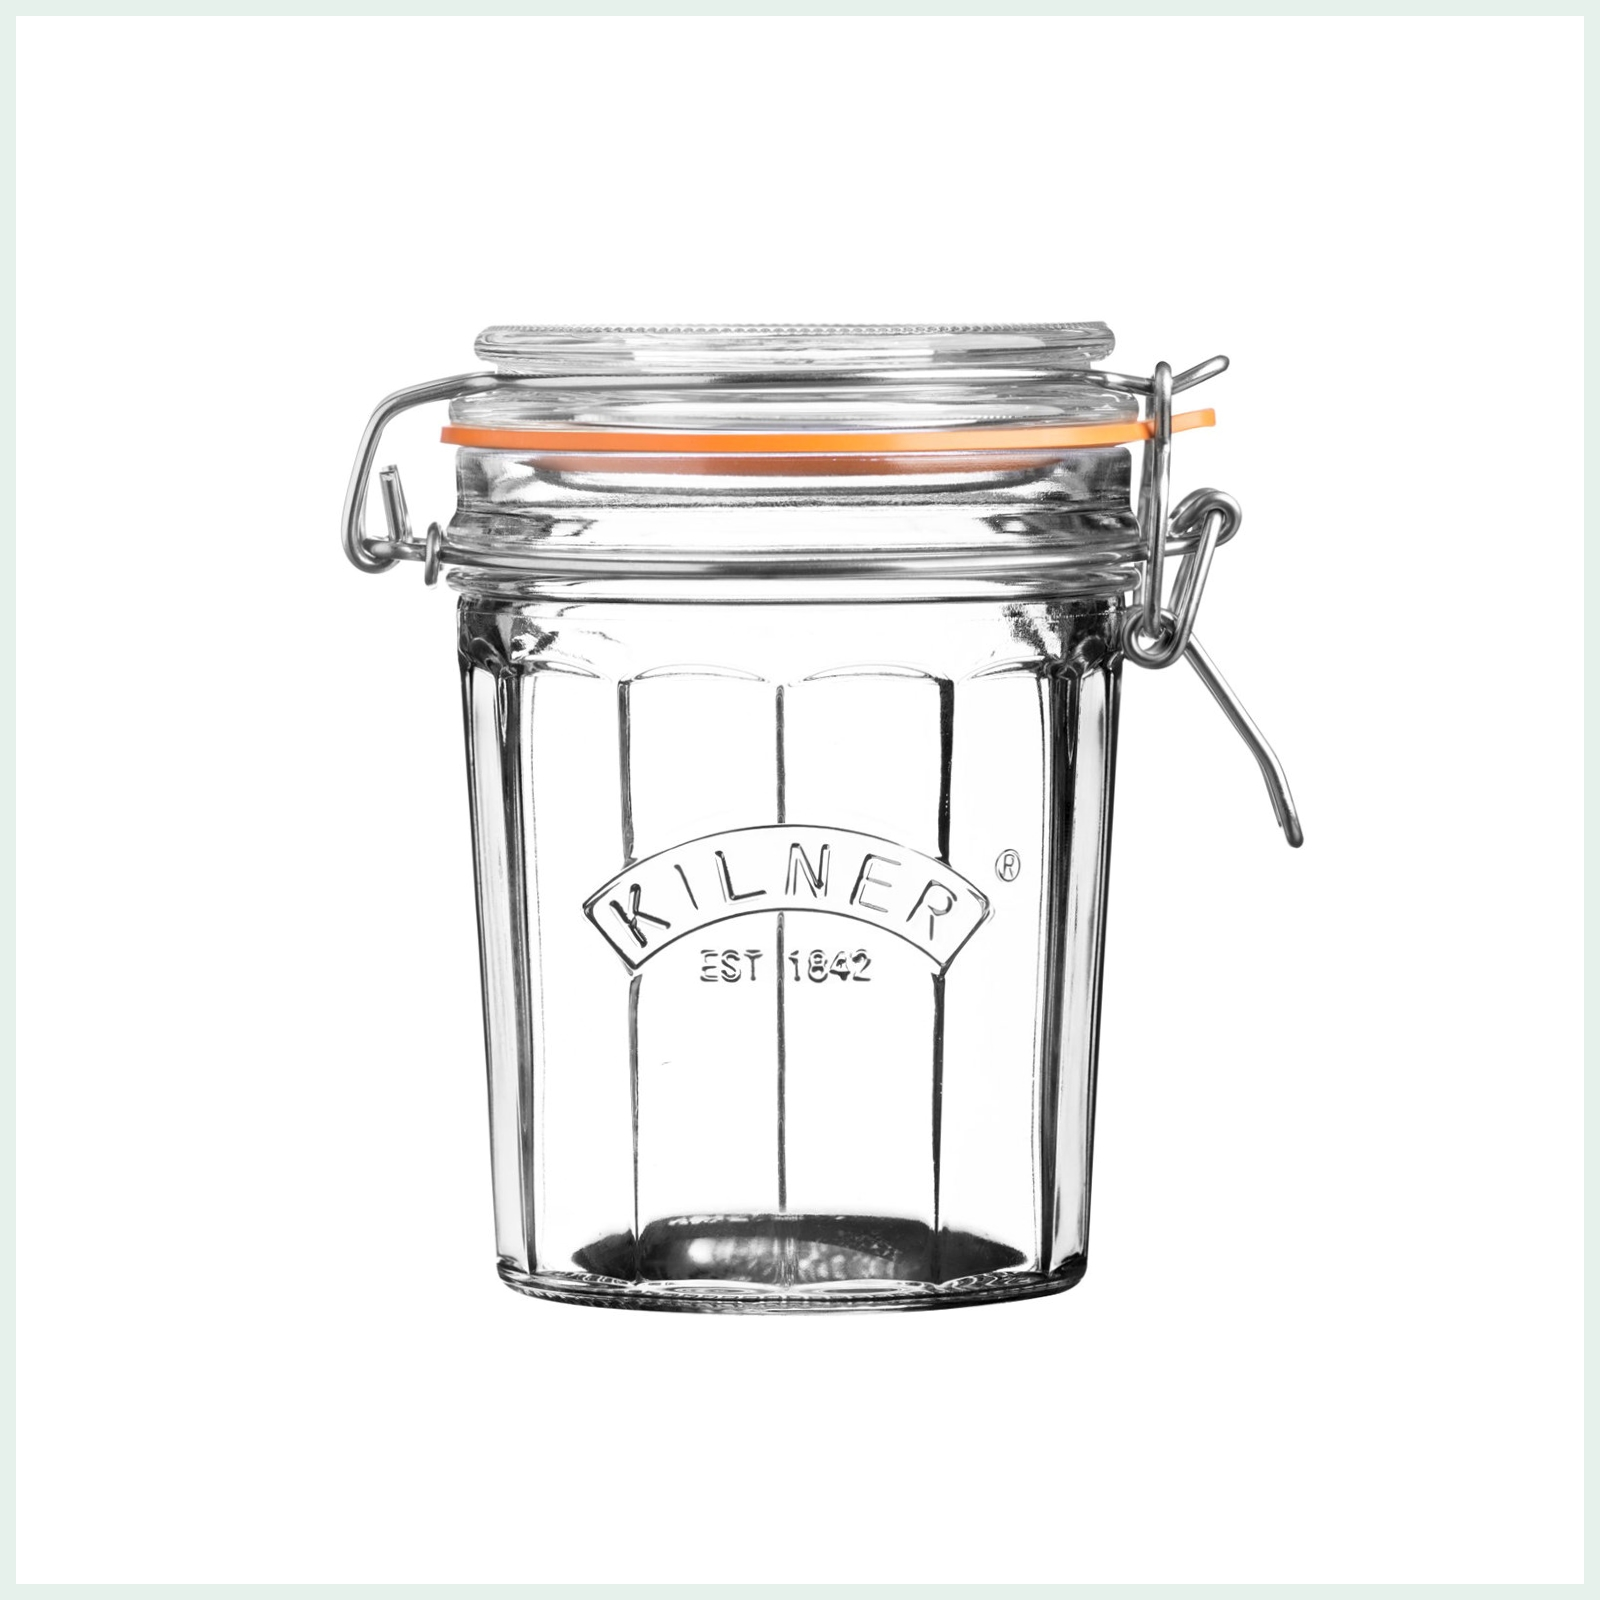 Kilner 0.45 litre faceted clip top preserve jars for dry storage, jam making and pickling. Available in 3 sizes.